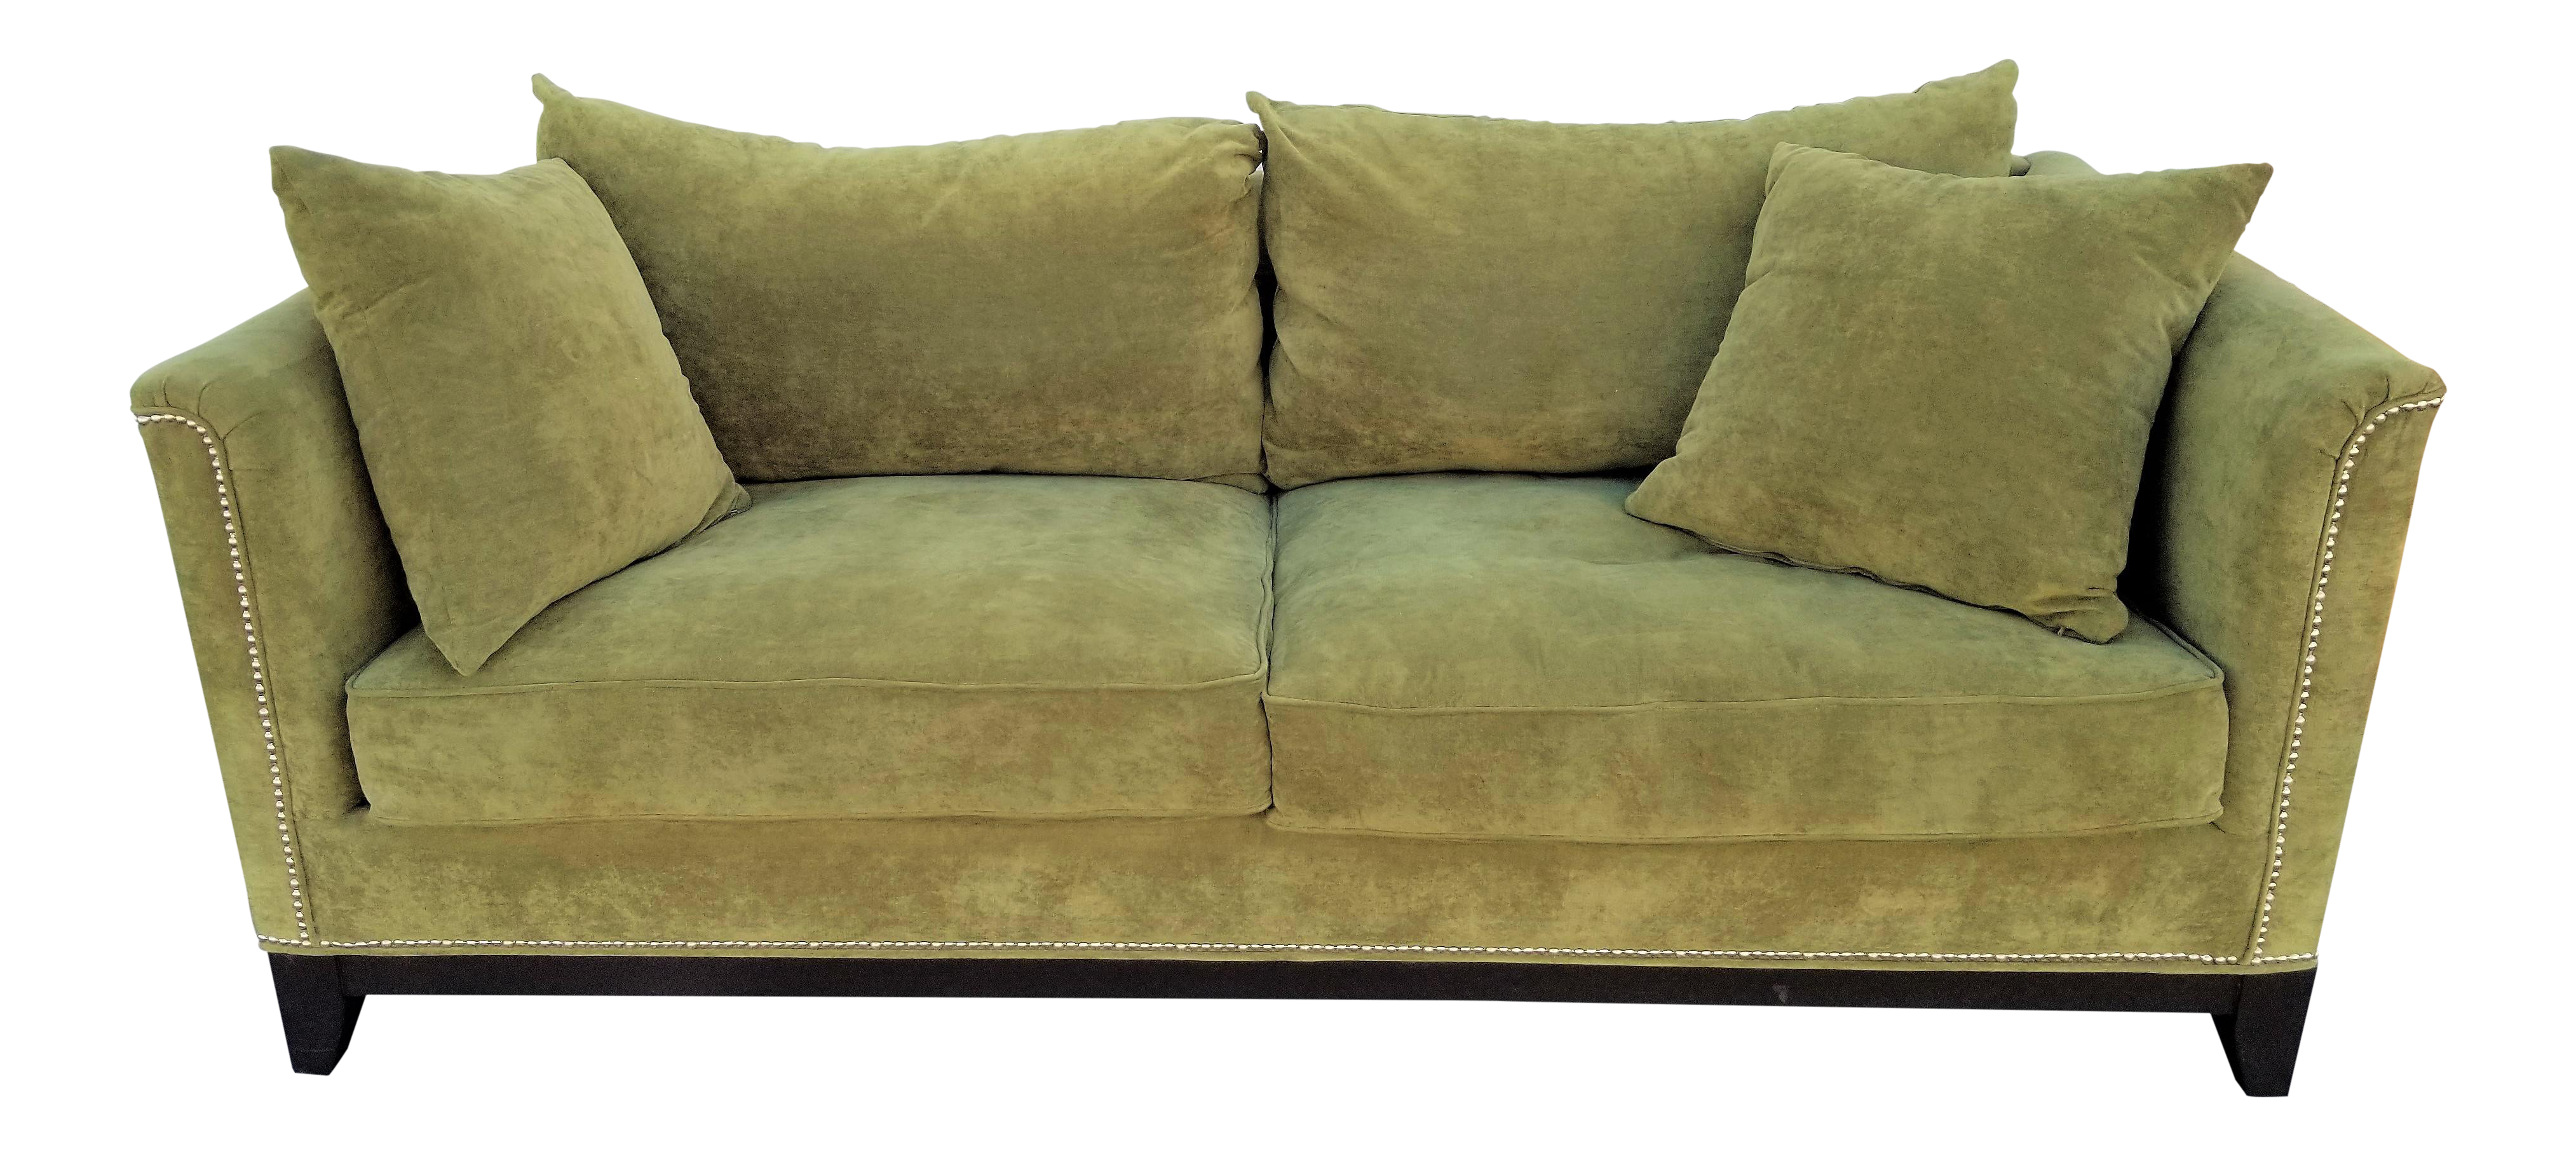 gently used mitchell gold bob williams furniture up to 70 off rh chairish com mitchell gold sofa slipcover mitchell gold sofa sale